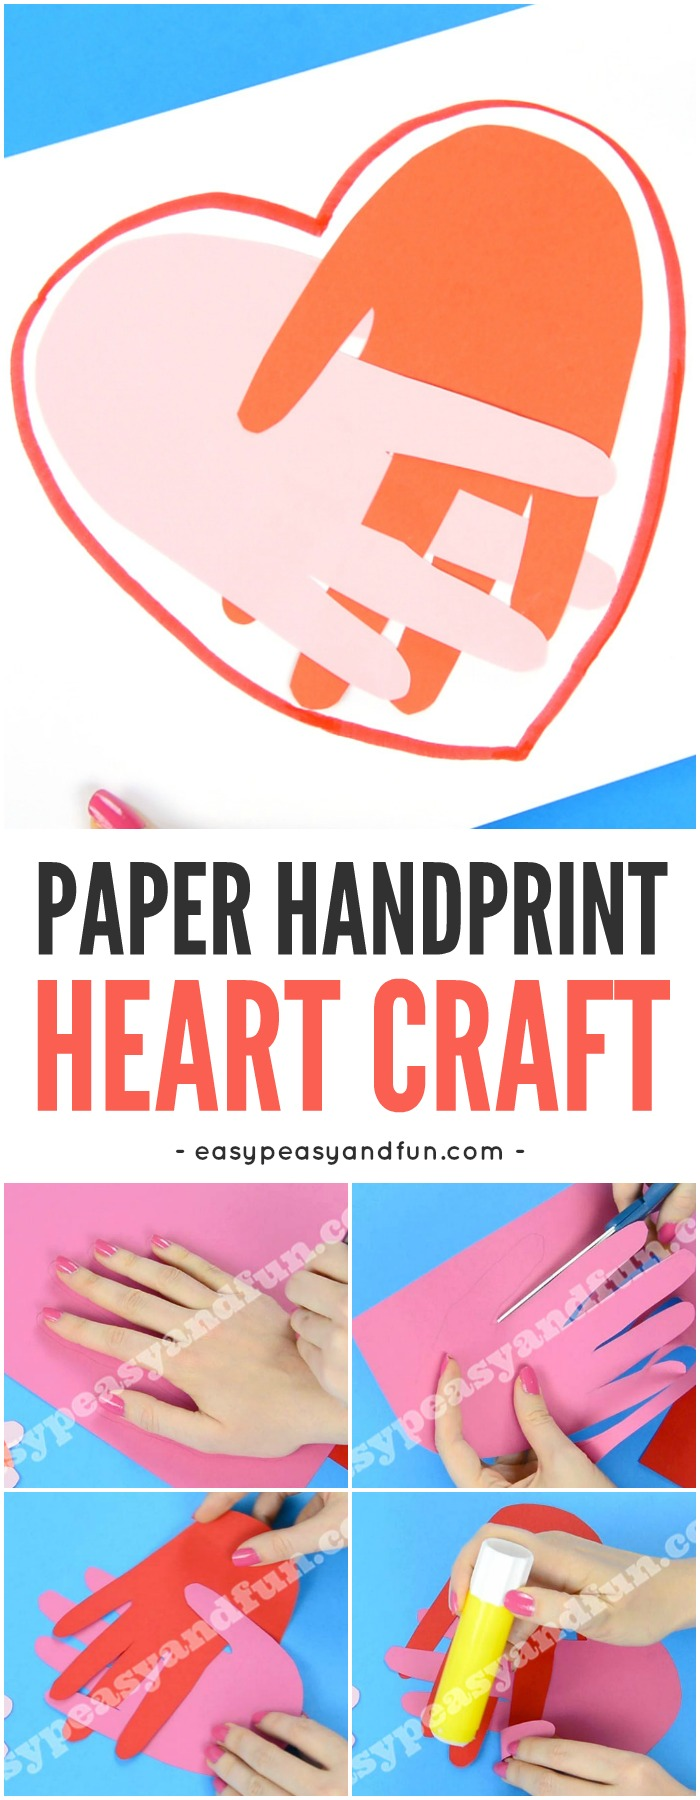 Handprint Heart Craft for Kids. Simple Valentines Day Craft for Kids. #valentinesdascrafts #papercraftsforkids #handprintcrafts